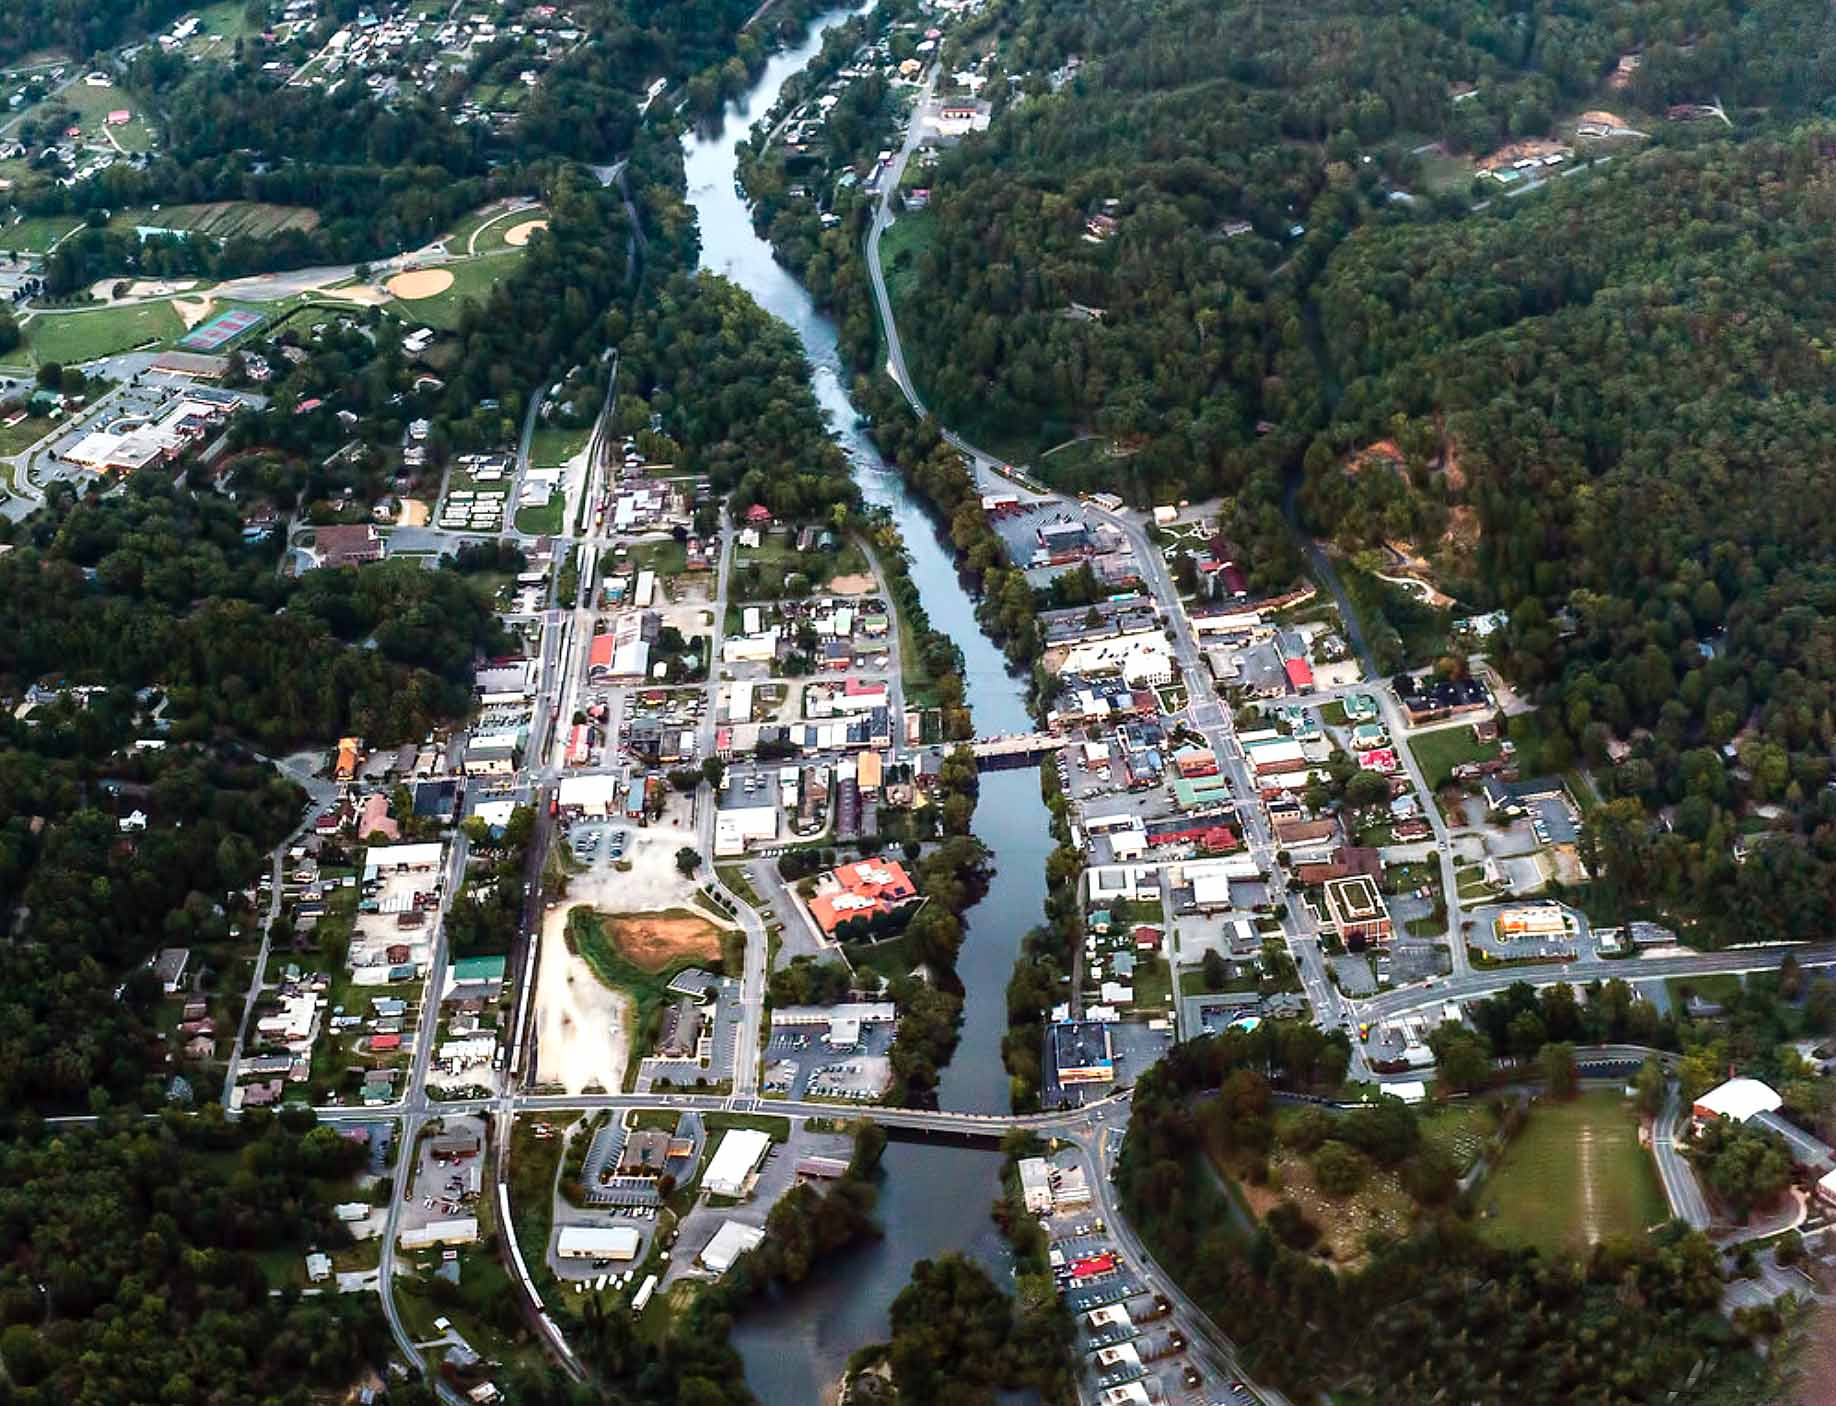 Bryson City, North Carolina